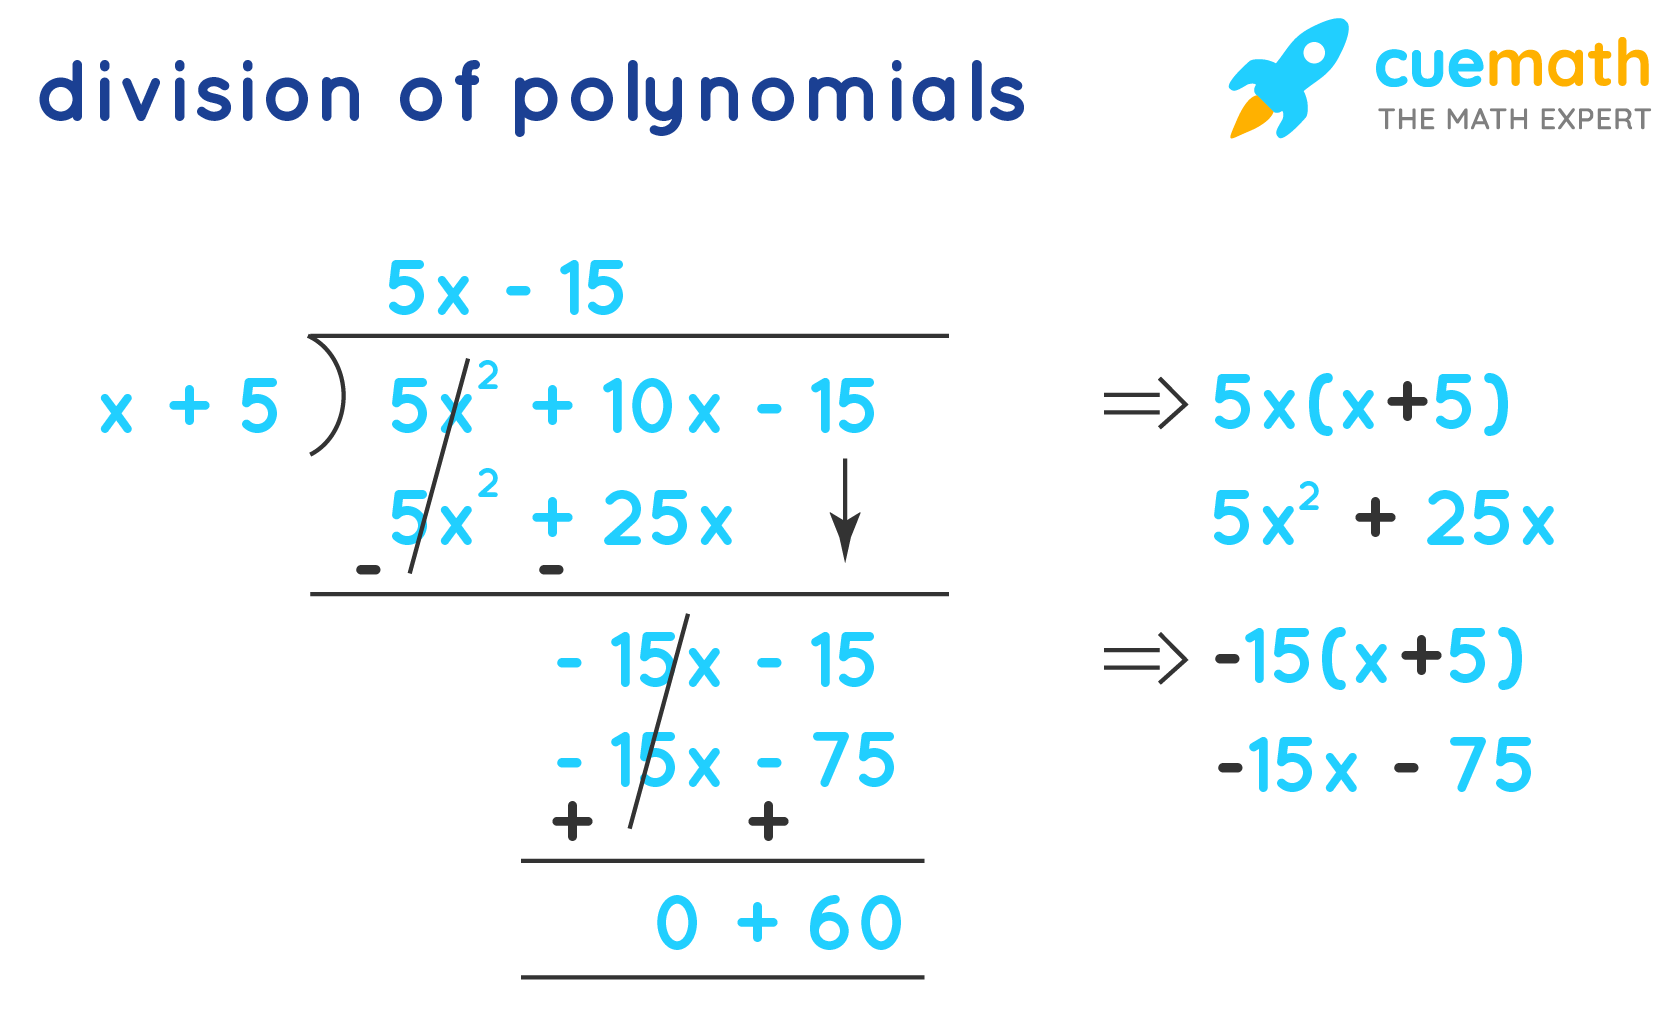 Division of polynomials by long division.